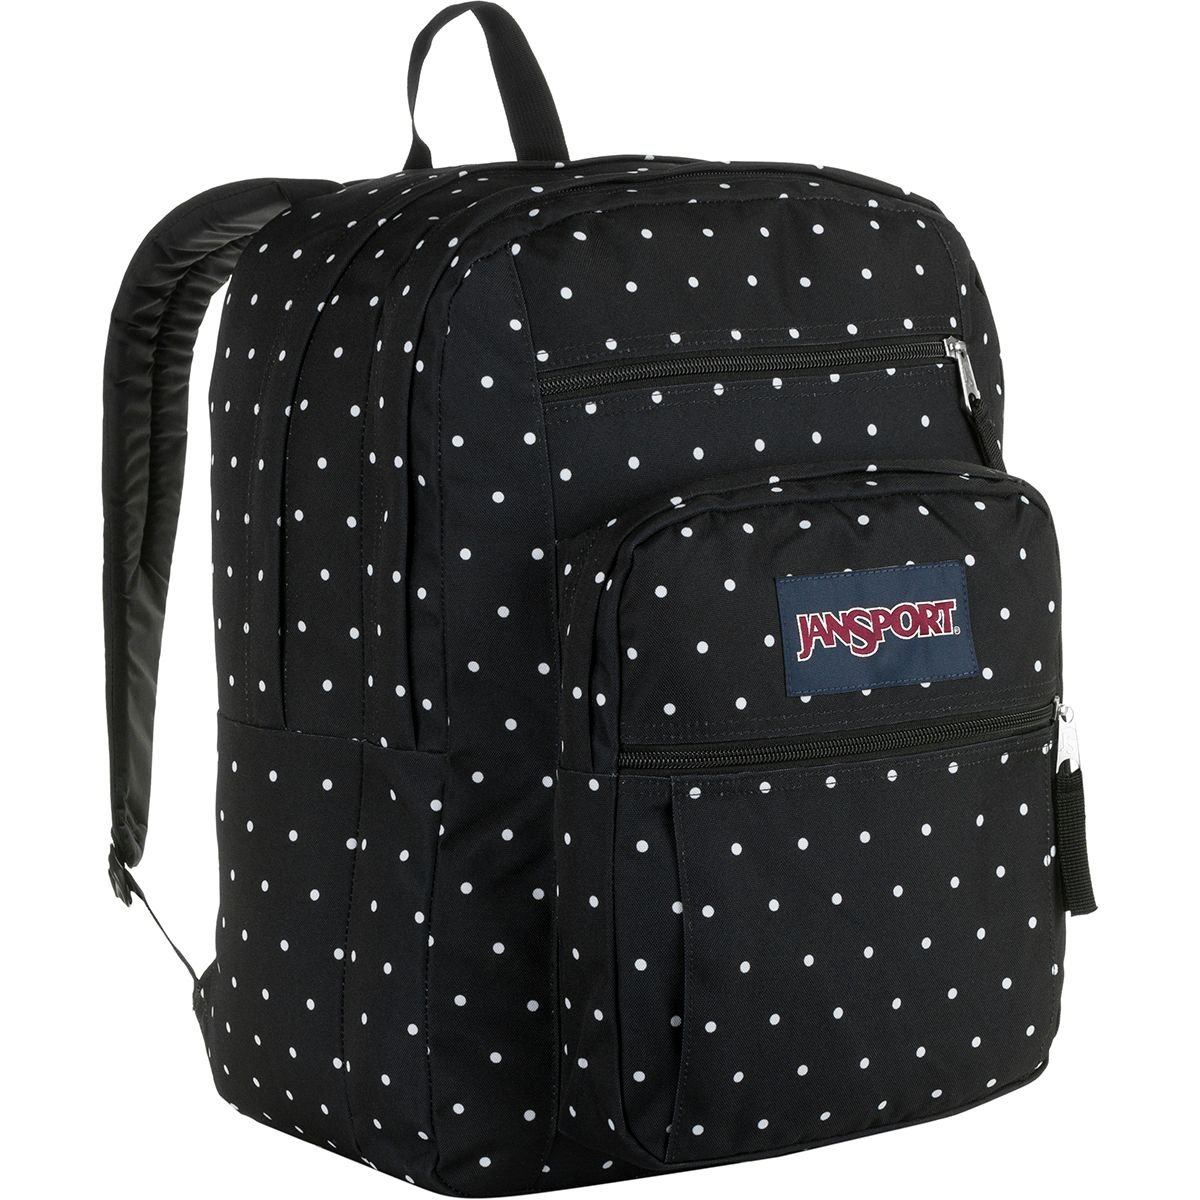 JanSport Big Student Black Polka Dot One Size